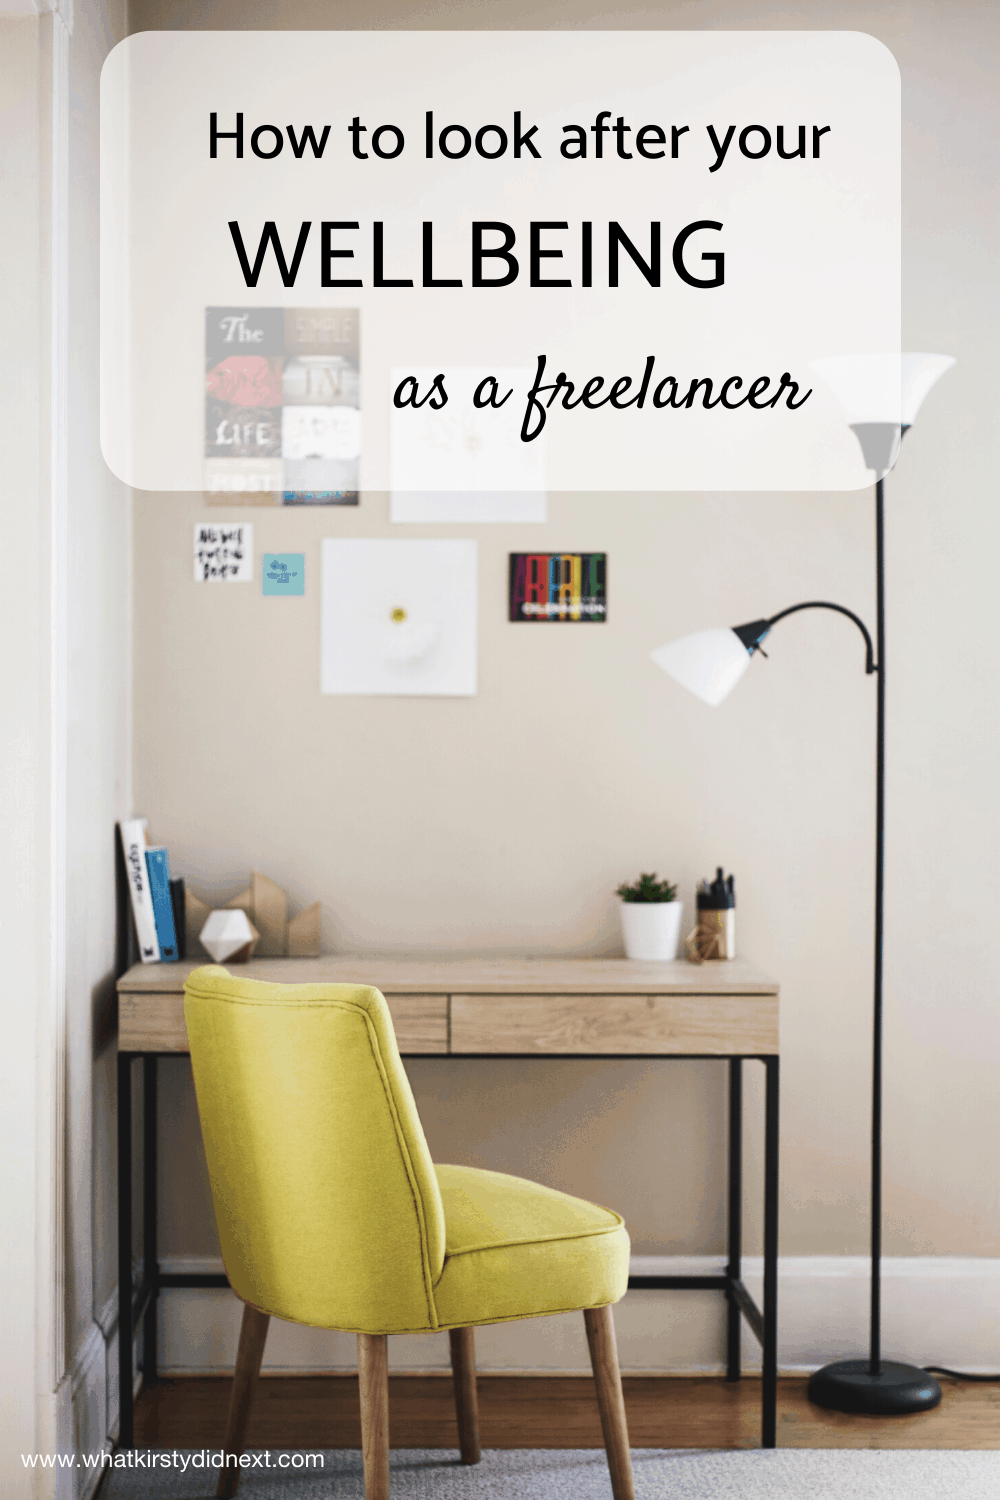 How to look after your wellbeing as a freelancer